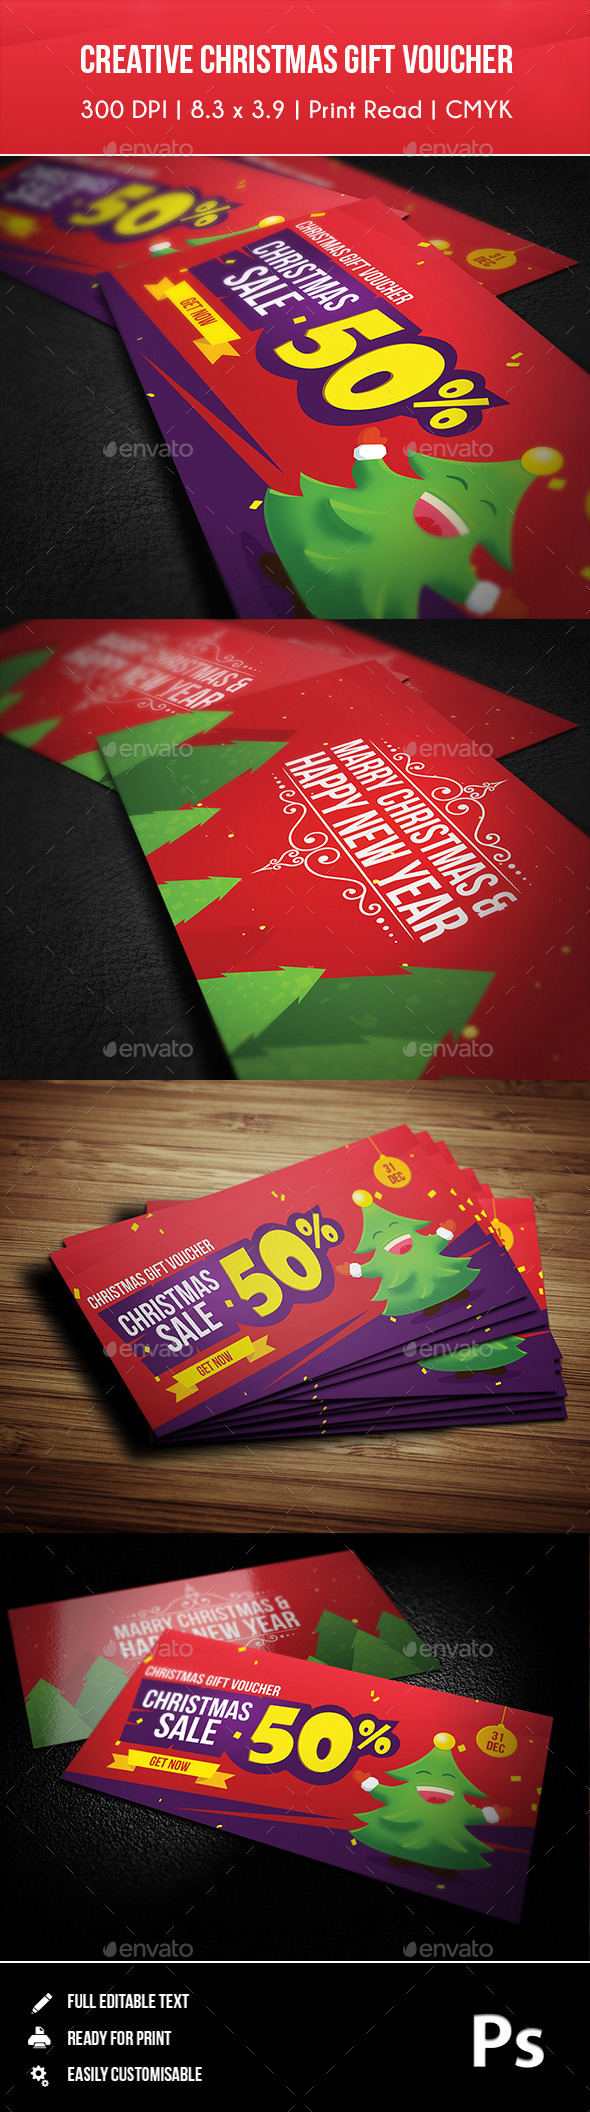 GraphicRiver Creative Christmas Gift Voucher 01 9774762